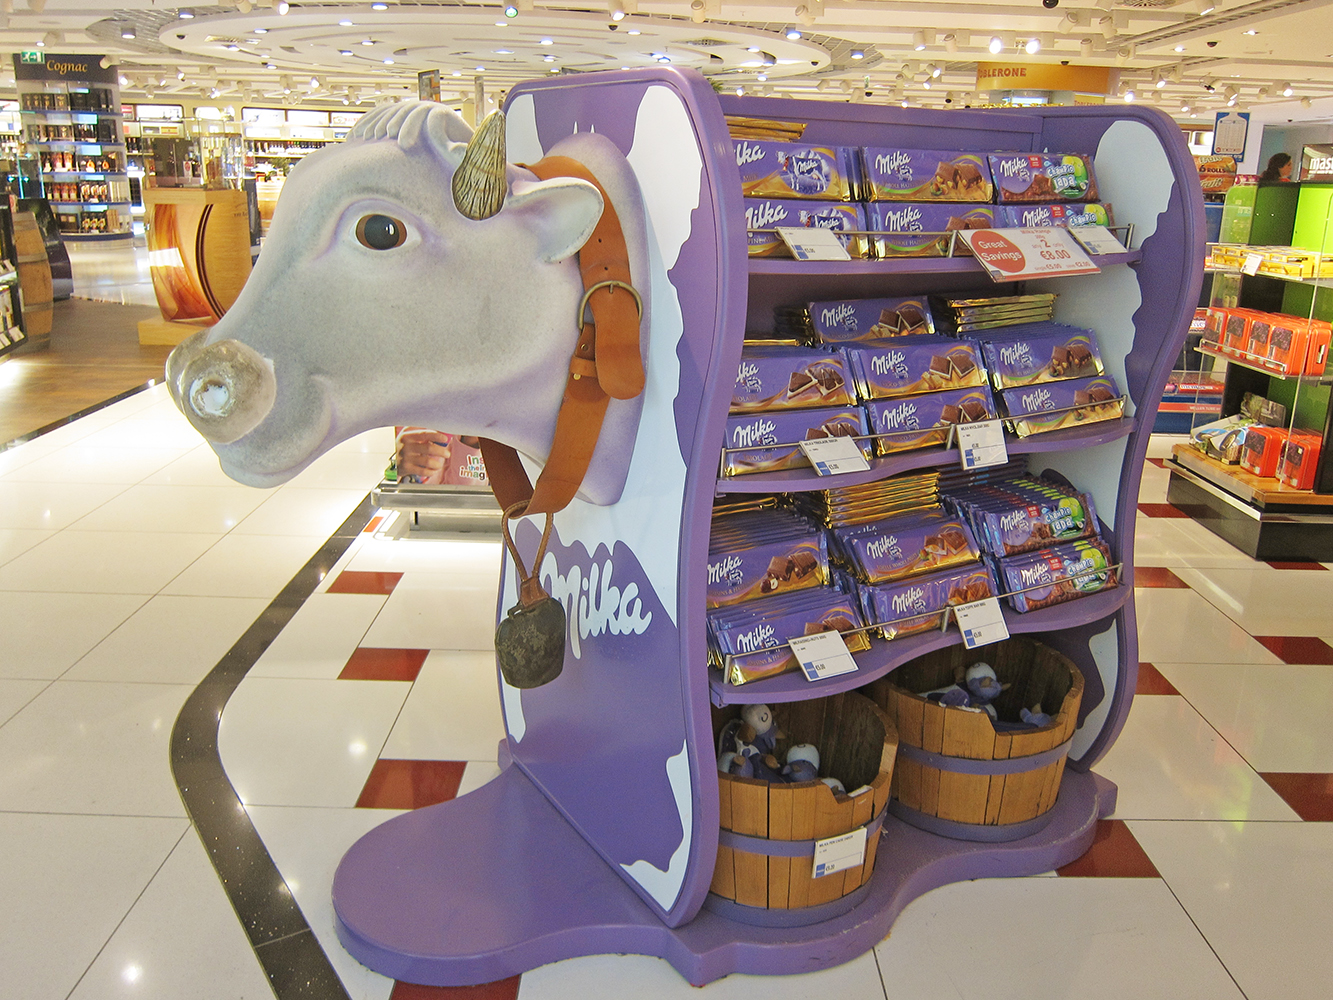 Milka Chocolate display at airport with purple cow shape